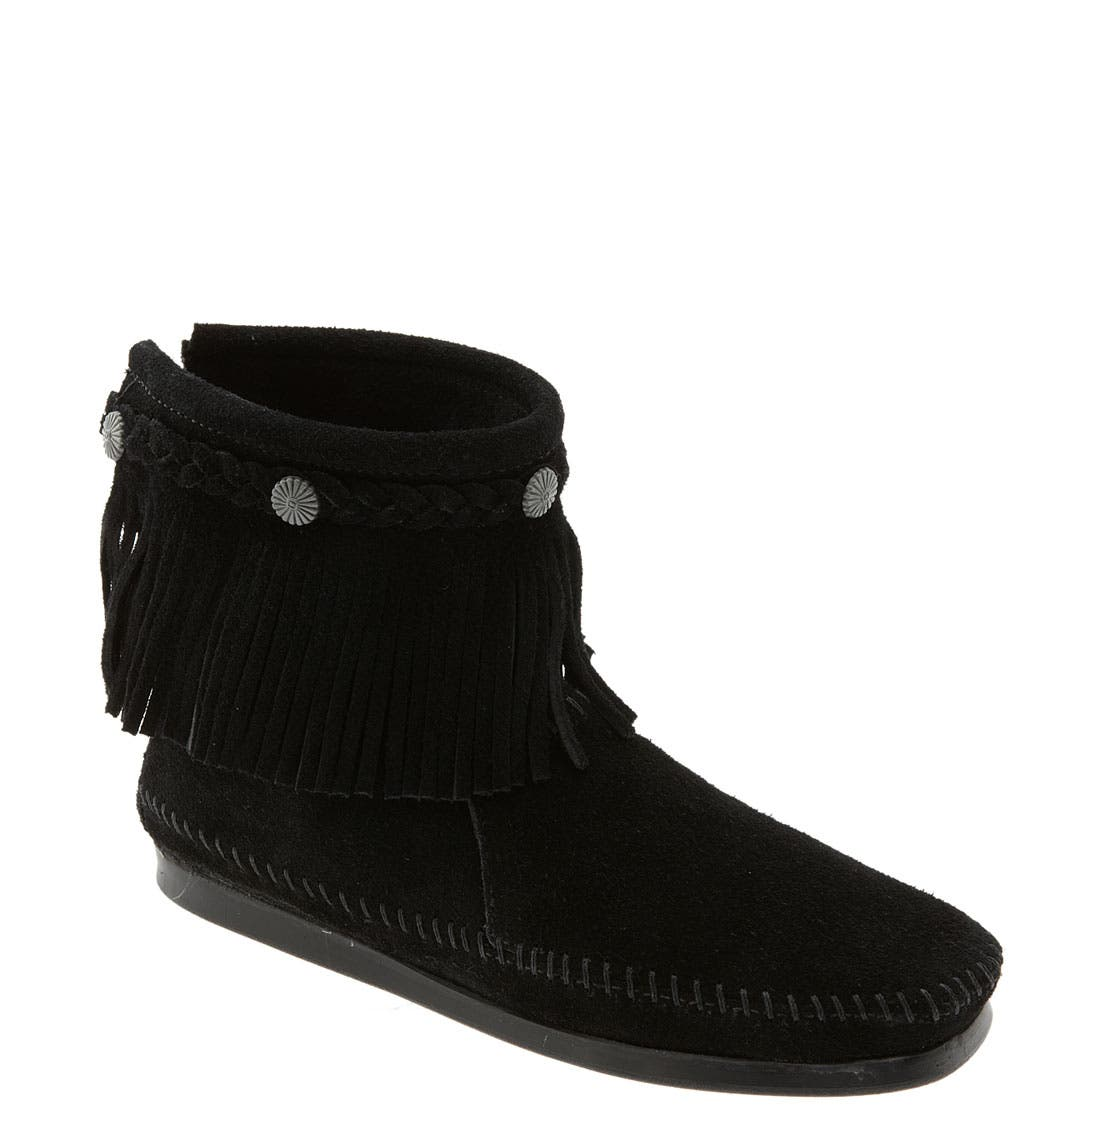 MINNETONKA Fringed Moccasin Bootie, Main, color, BLACK